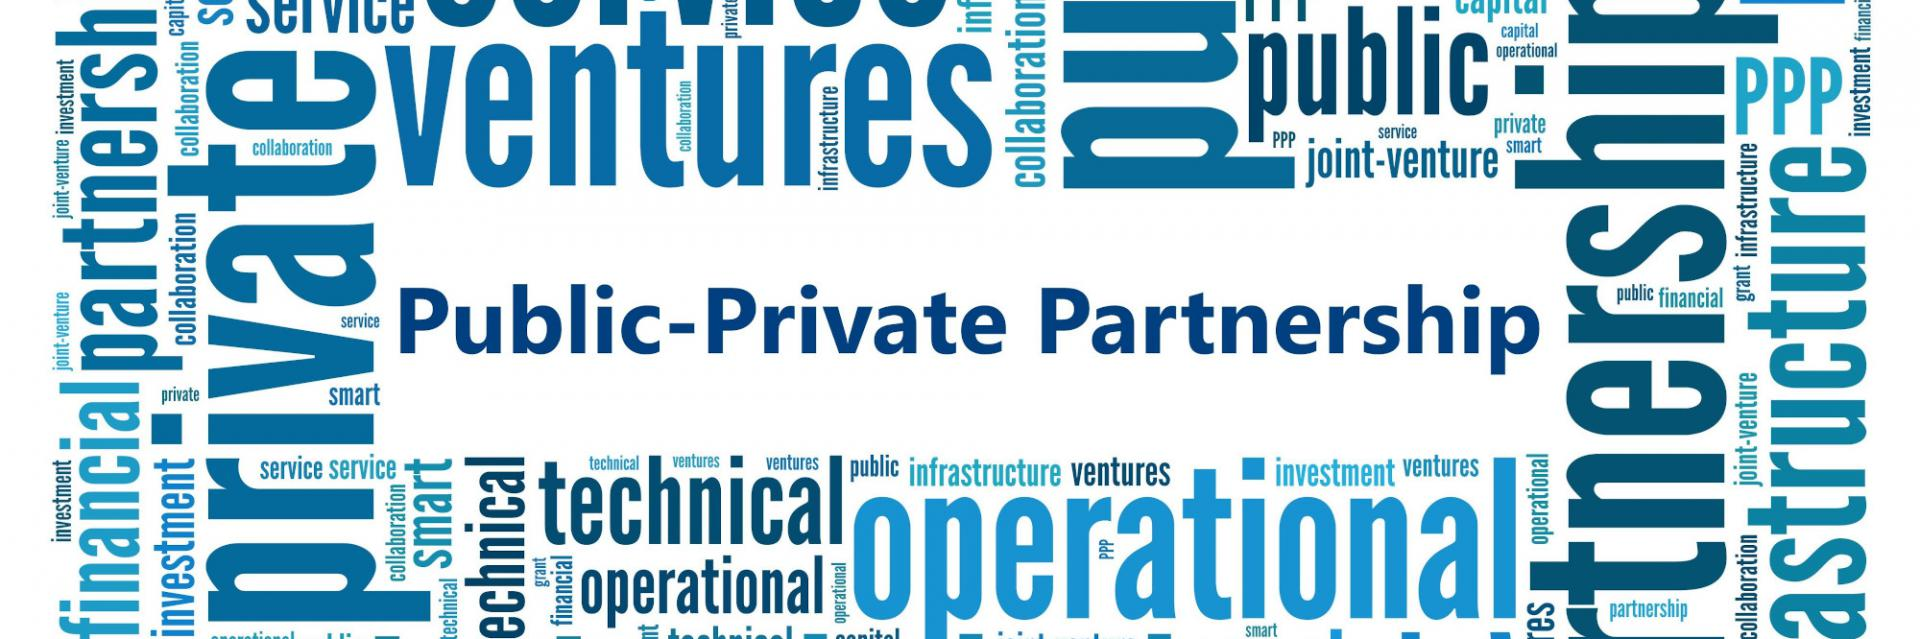 Experts push for strong public-private partnerships to build resilient post-COVID-19 economies